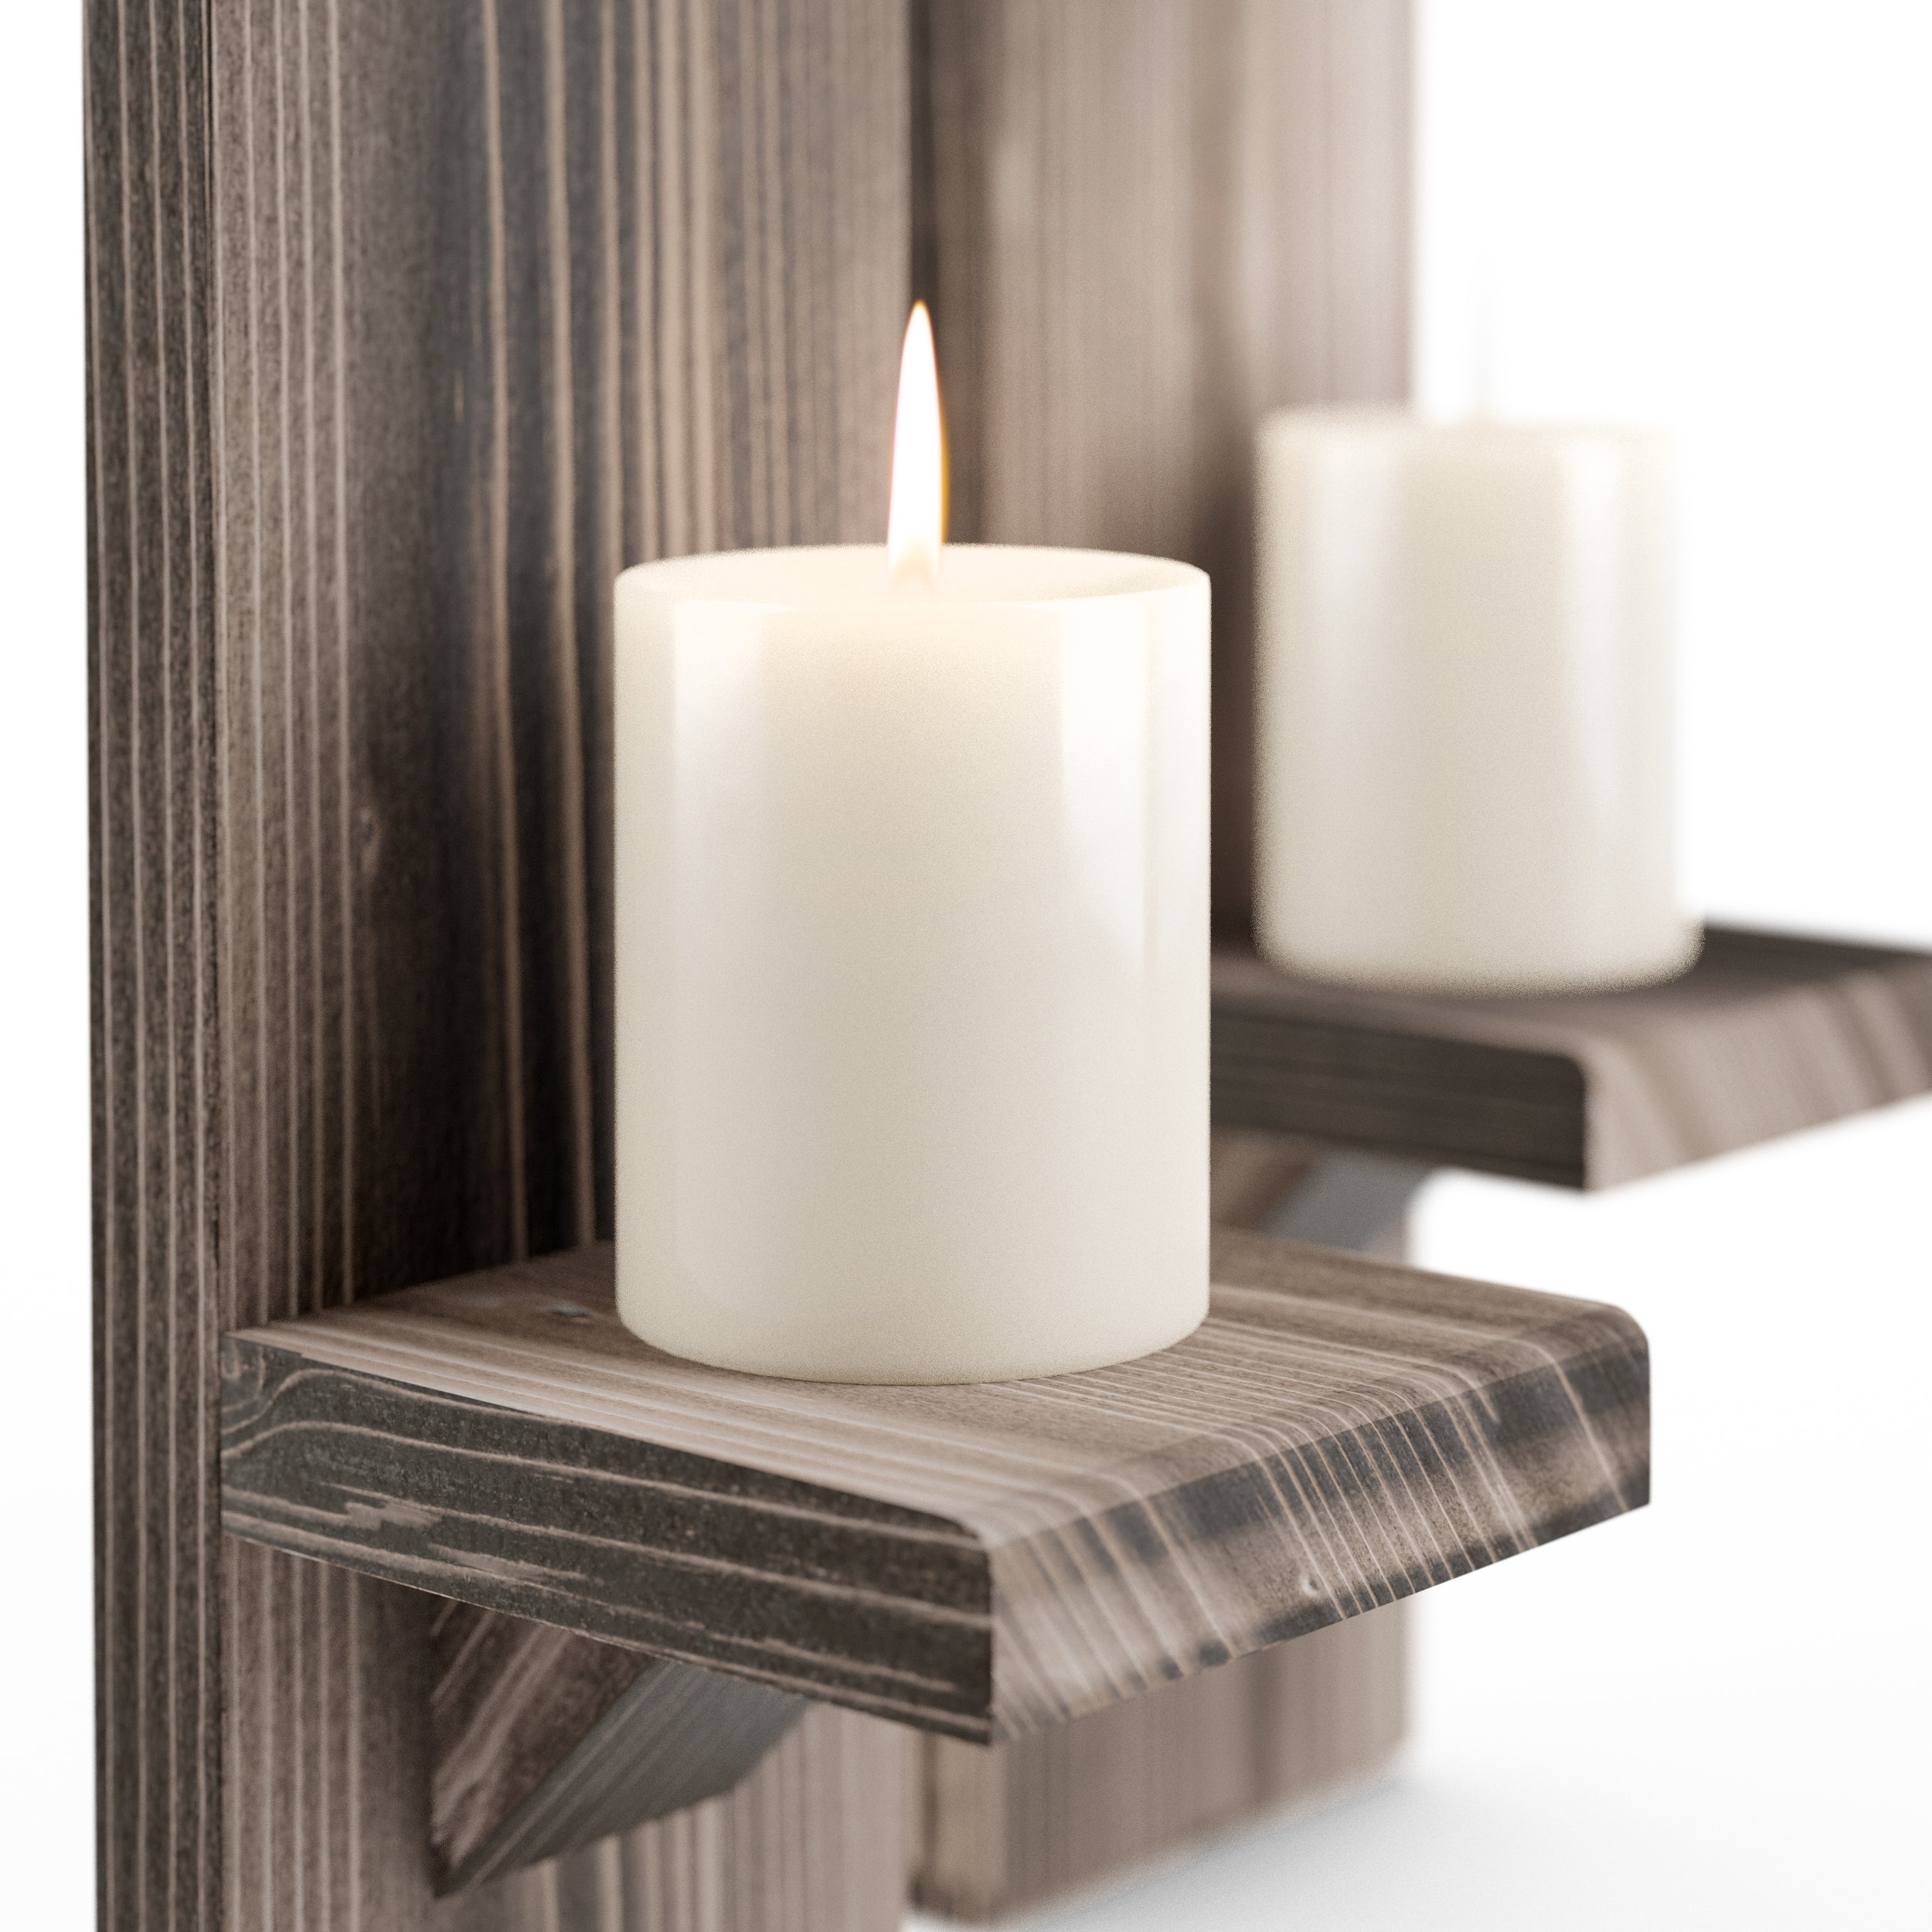 Large Rustic Wall-Mounted Candle Sconces - LocalBeavers